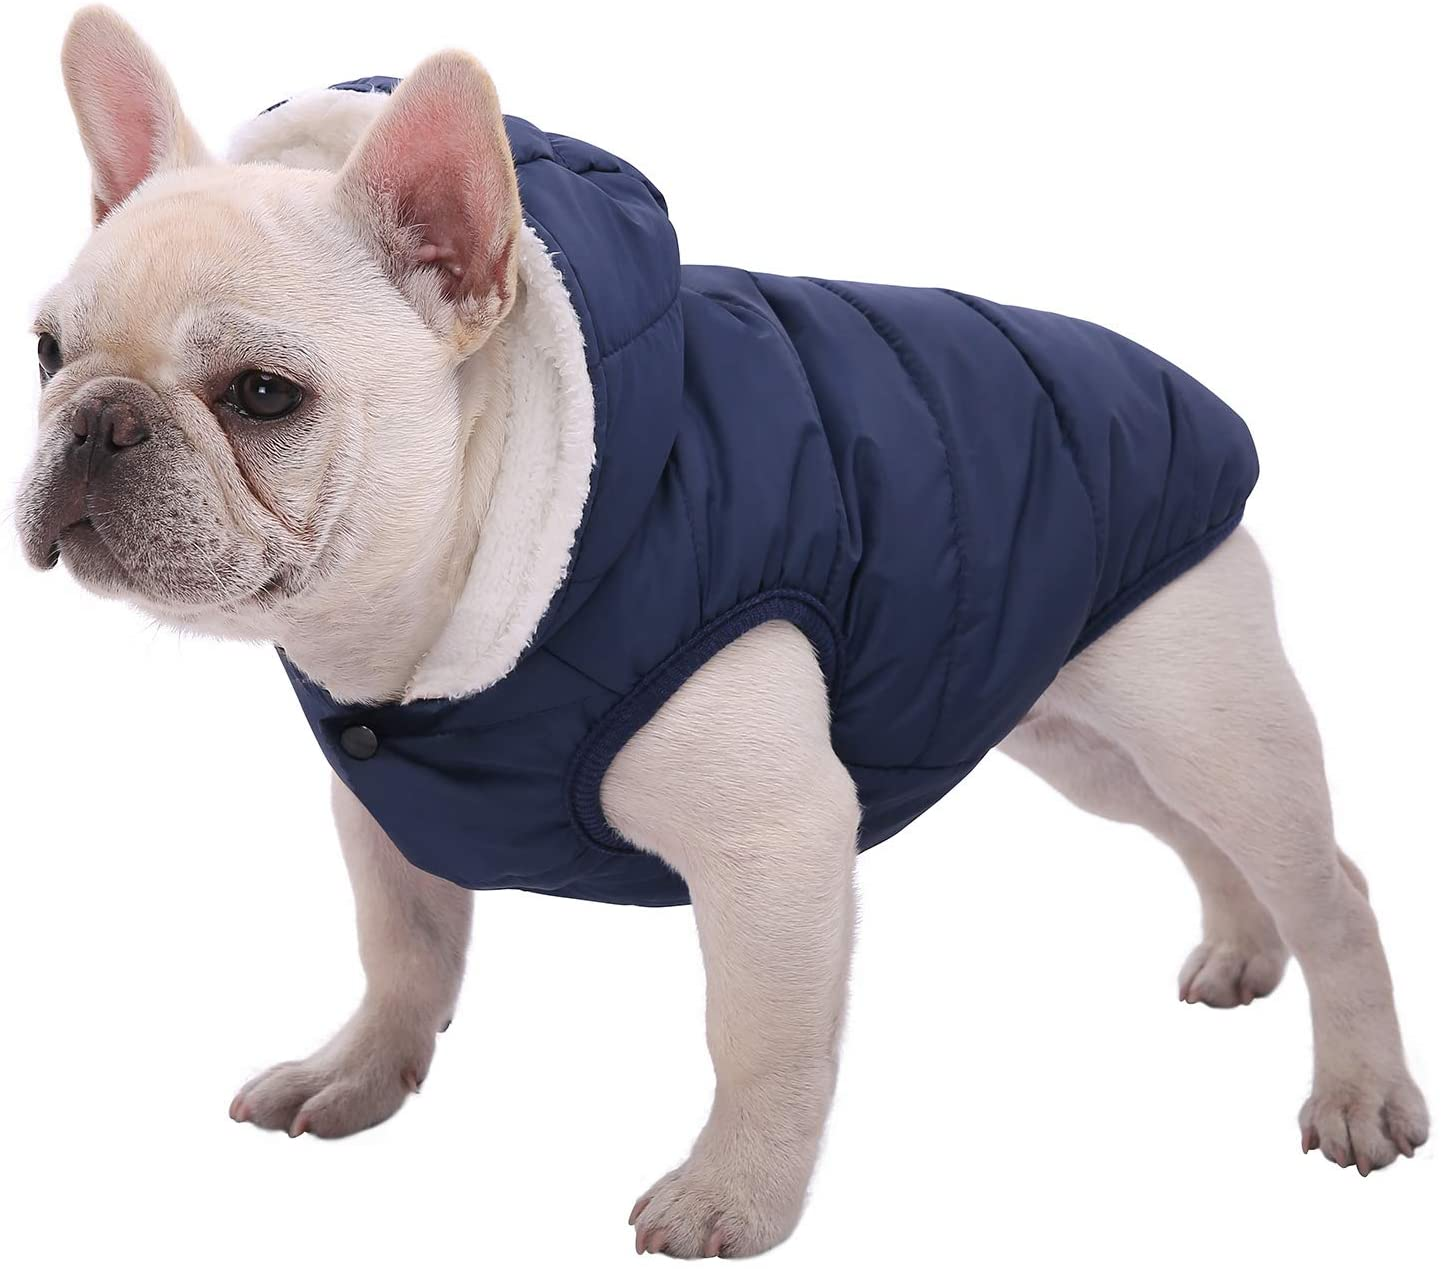 SAWMONG Dog Fleece Hoodie, Windproof Waterproof Dog Coat, Fleece & Cotton Lined Warm Dog Jacket, Cold Weather Pet Apparel Clothes Vest for Small Medium Large Dog Breeds